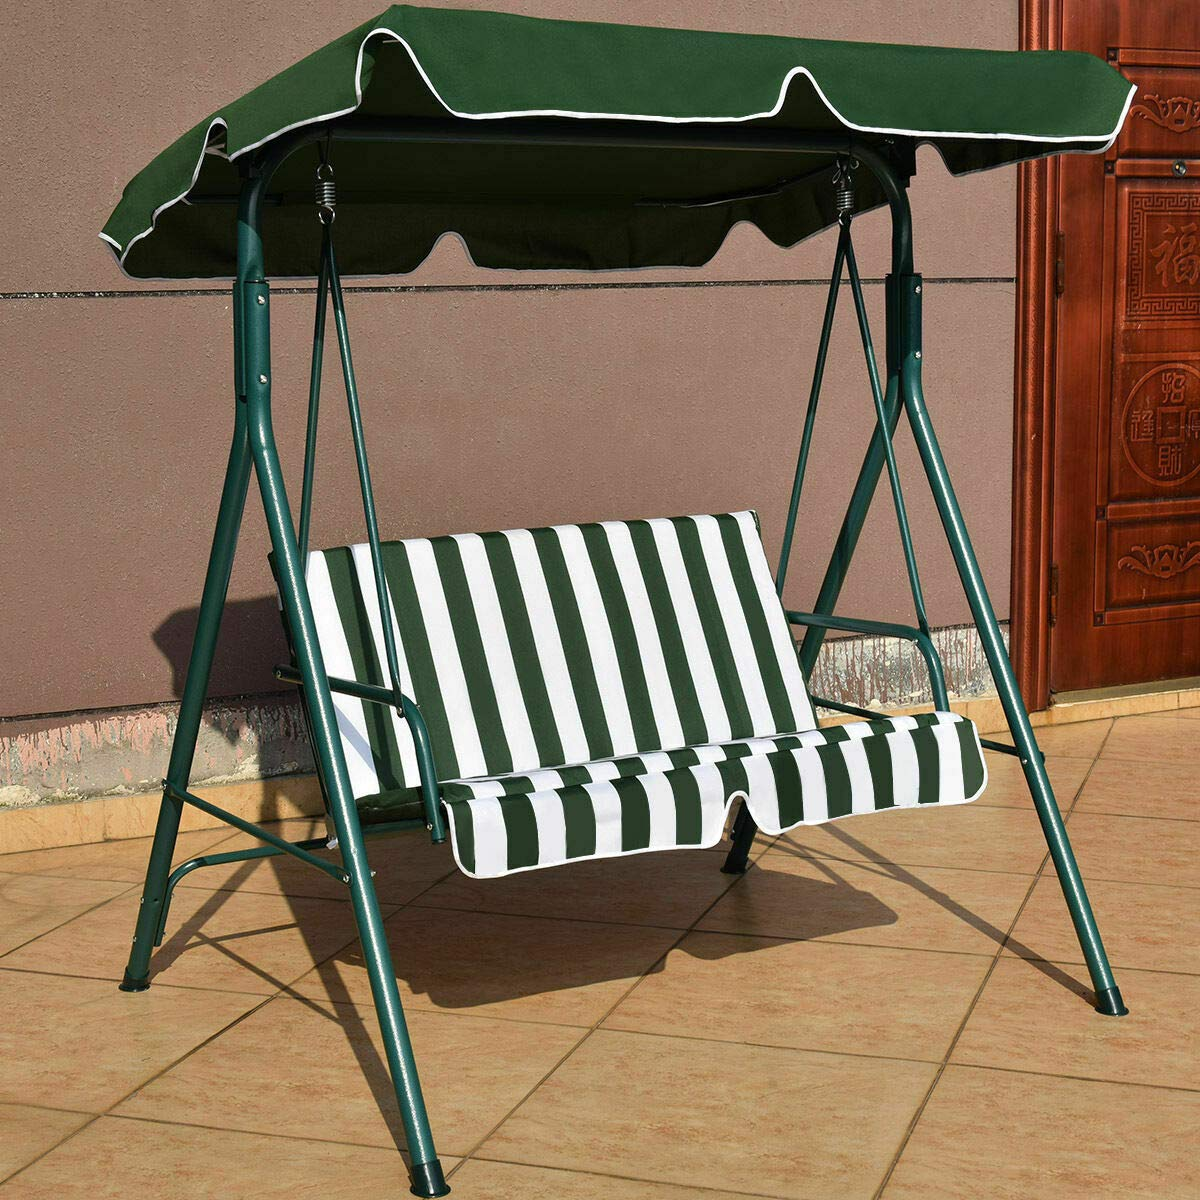 Heavens Tvcz Excellent Hammock Glider Loveseat Swing Green Canopy Cushioned Comfortable Seats Frame Steel Patio Outdoor